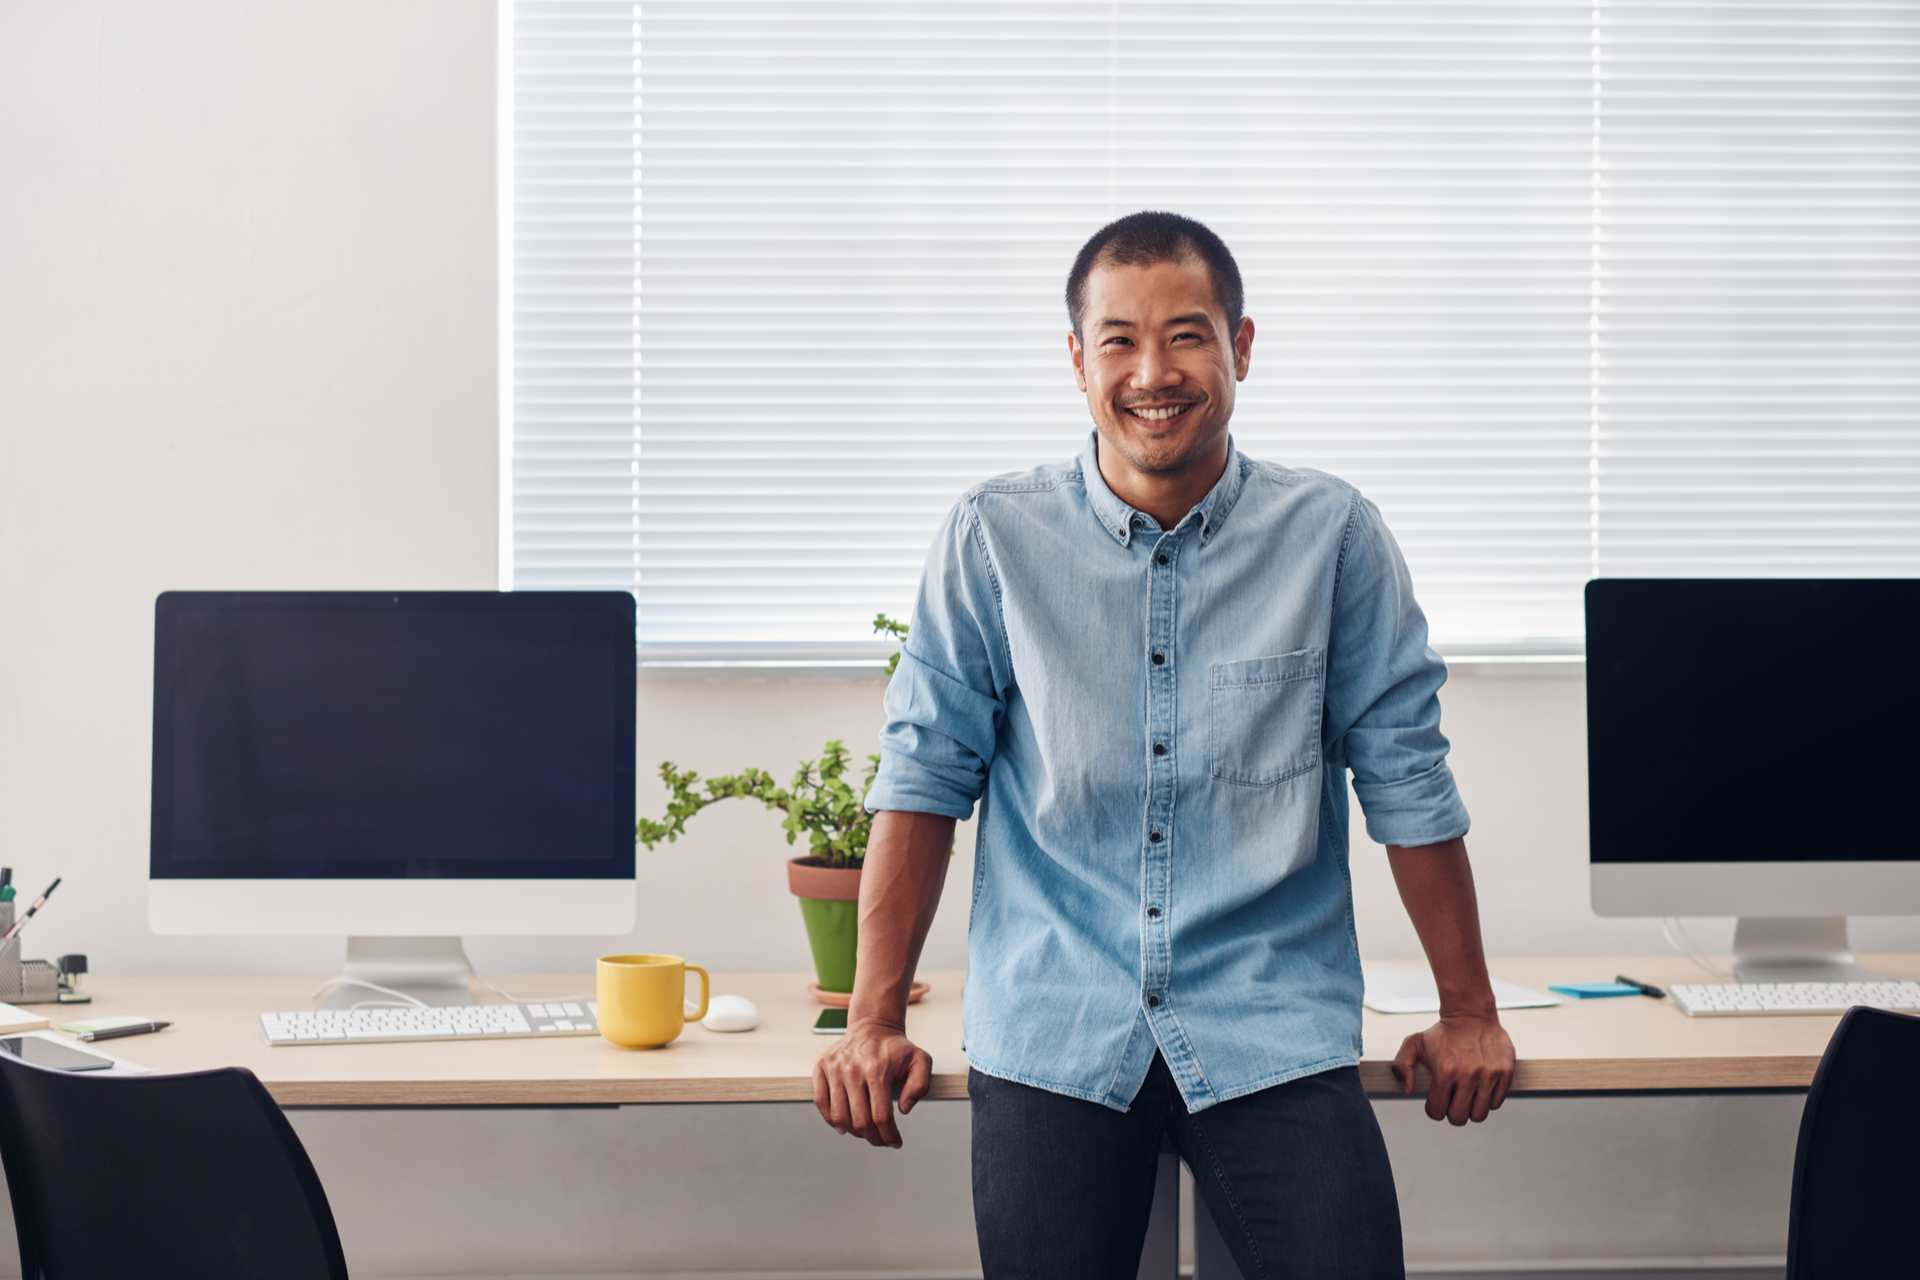 Portrait of a smiling young Asian professional leaning on a computer table